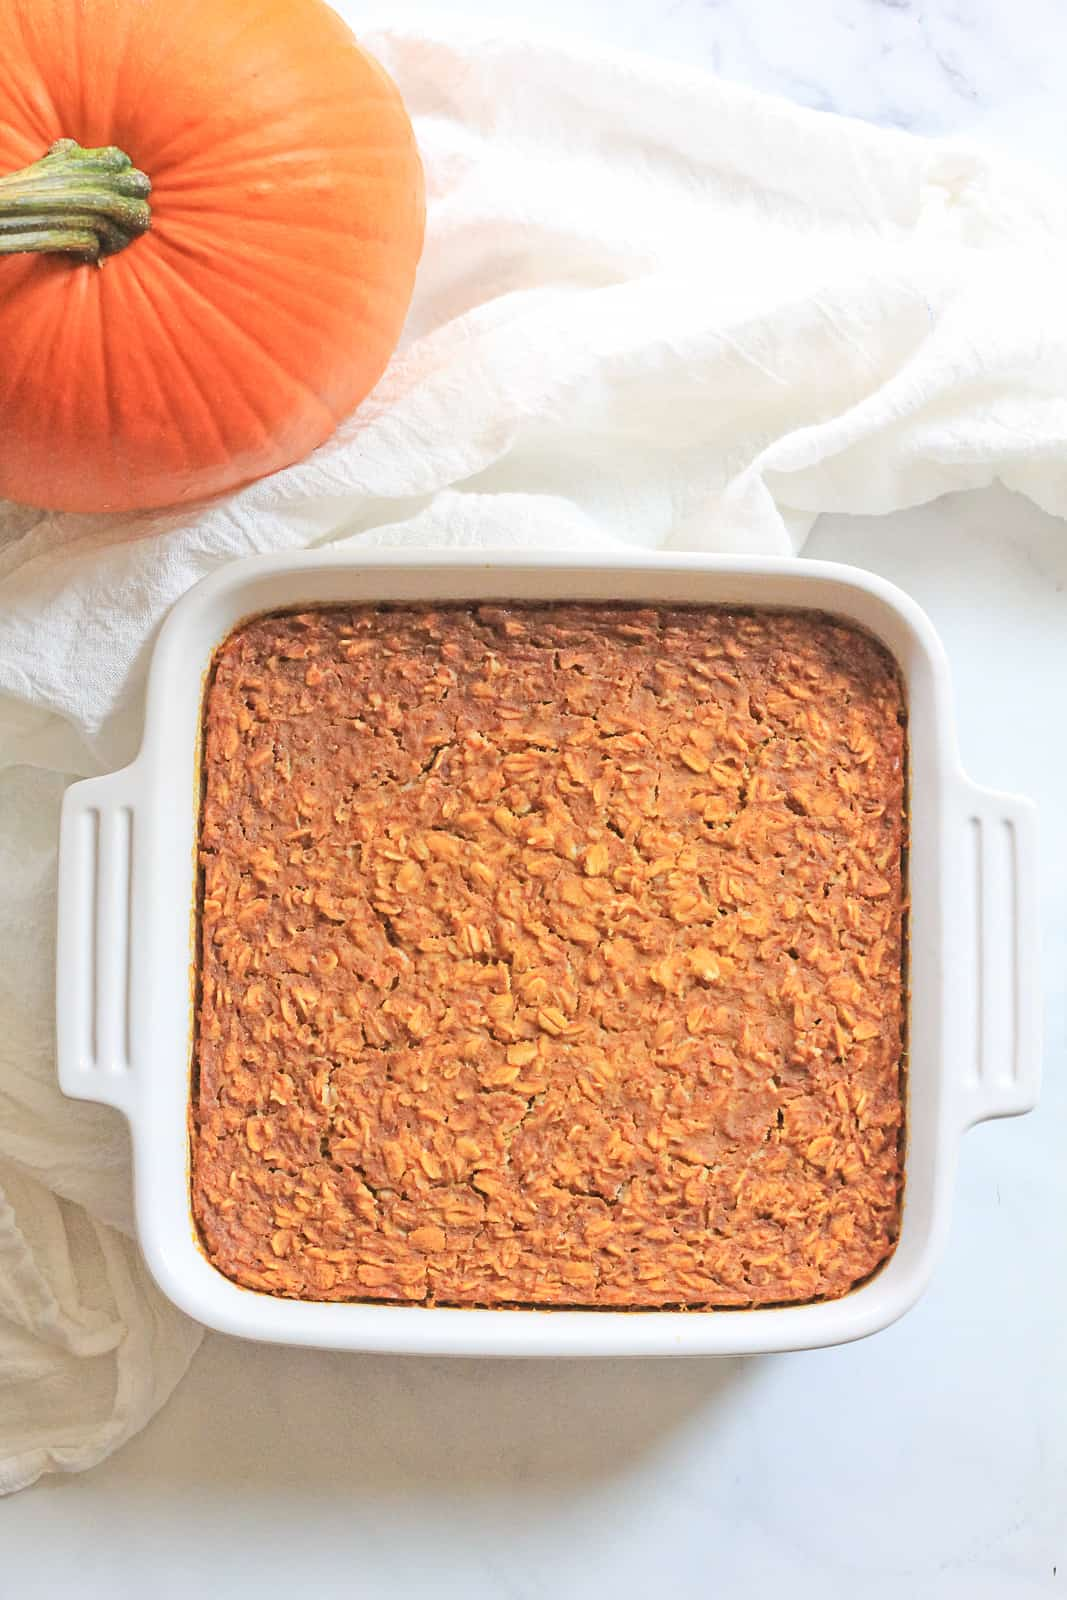 White square baking dish full of pumpkin oatmeal bake with a white towel and orange pie pumpkin.